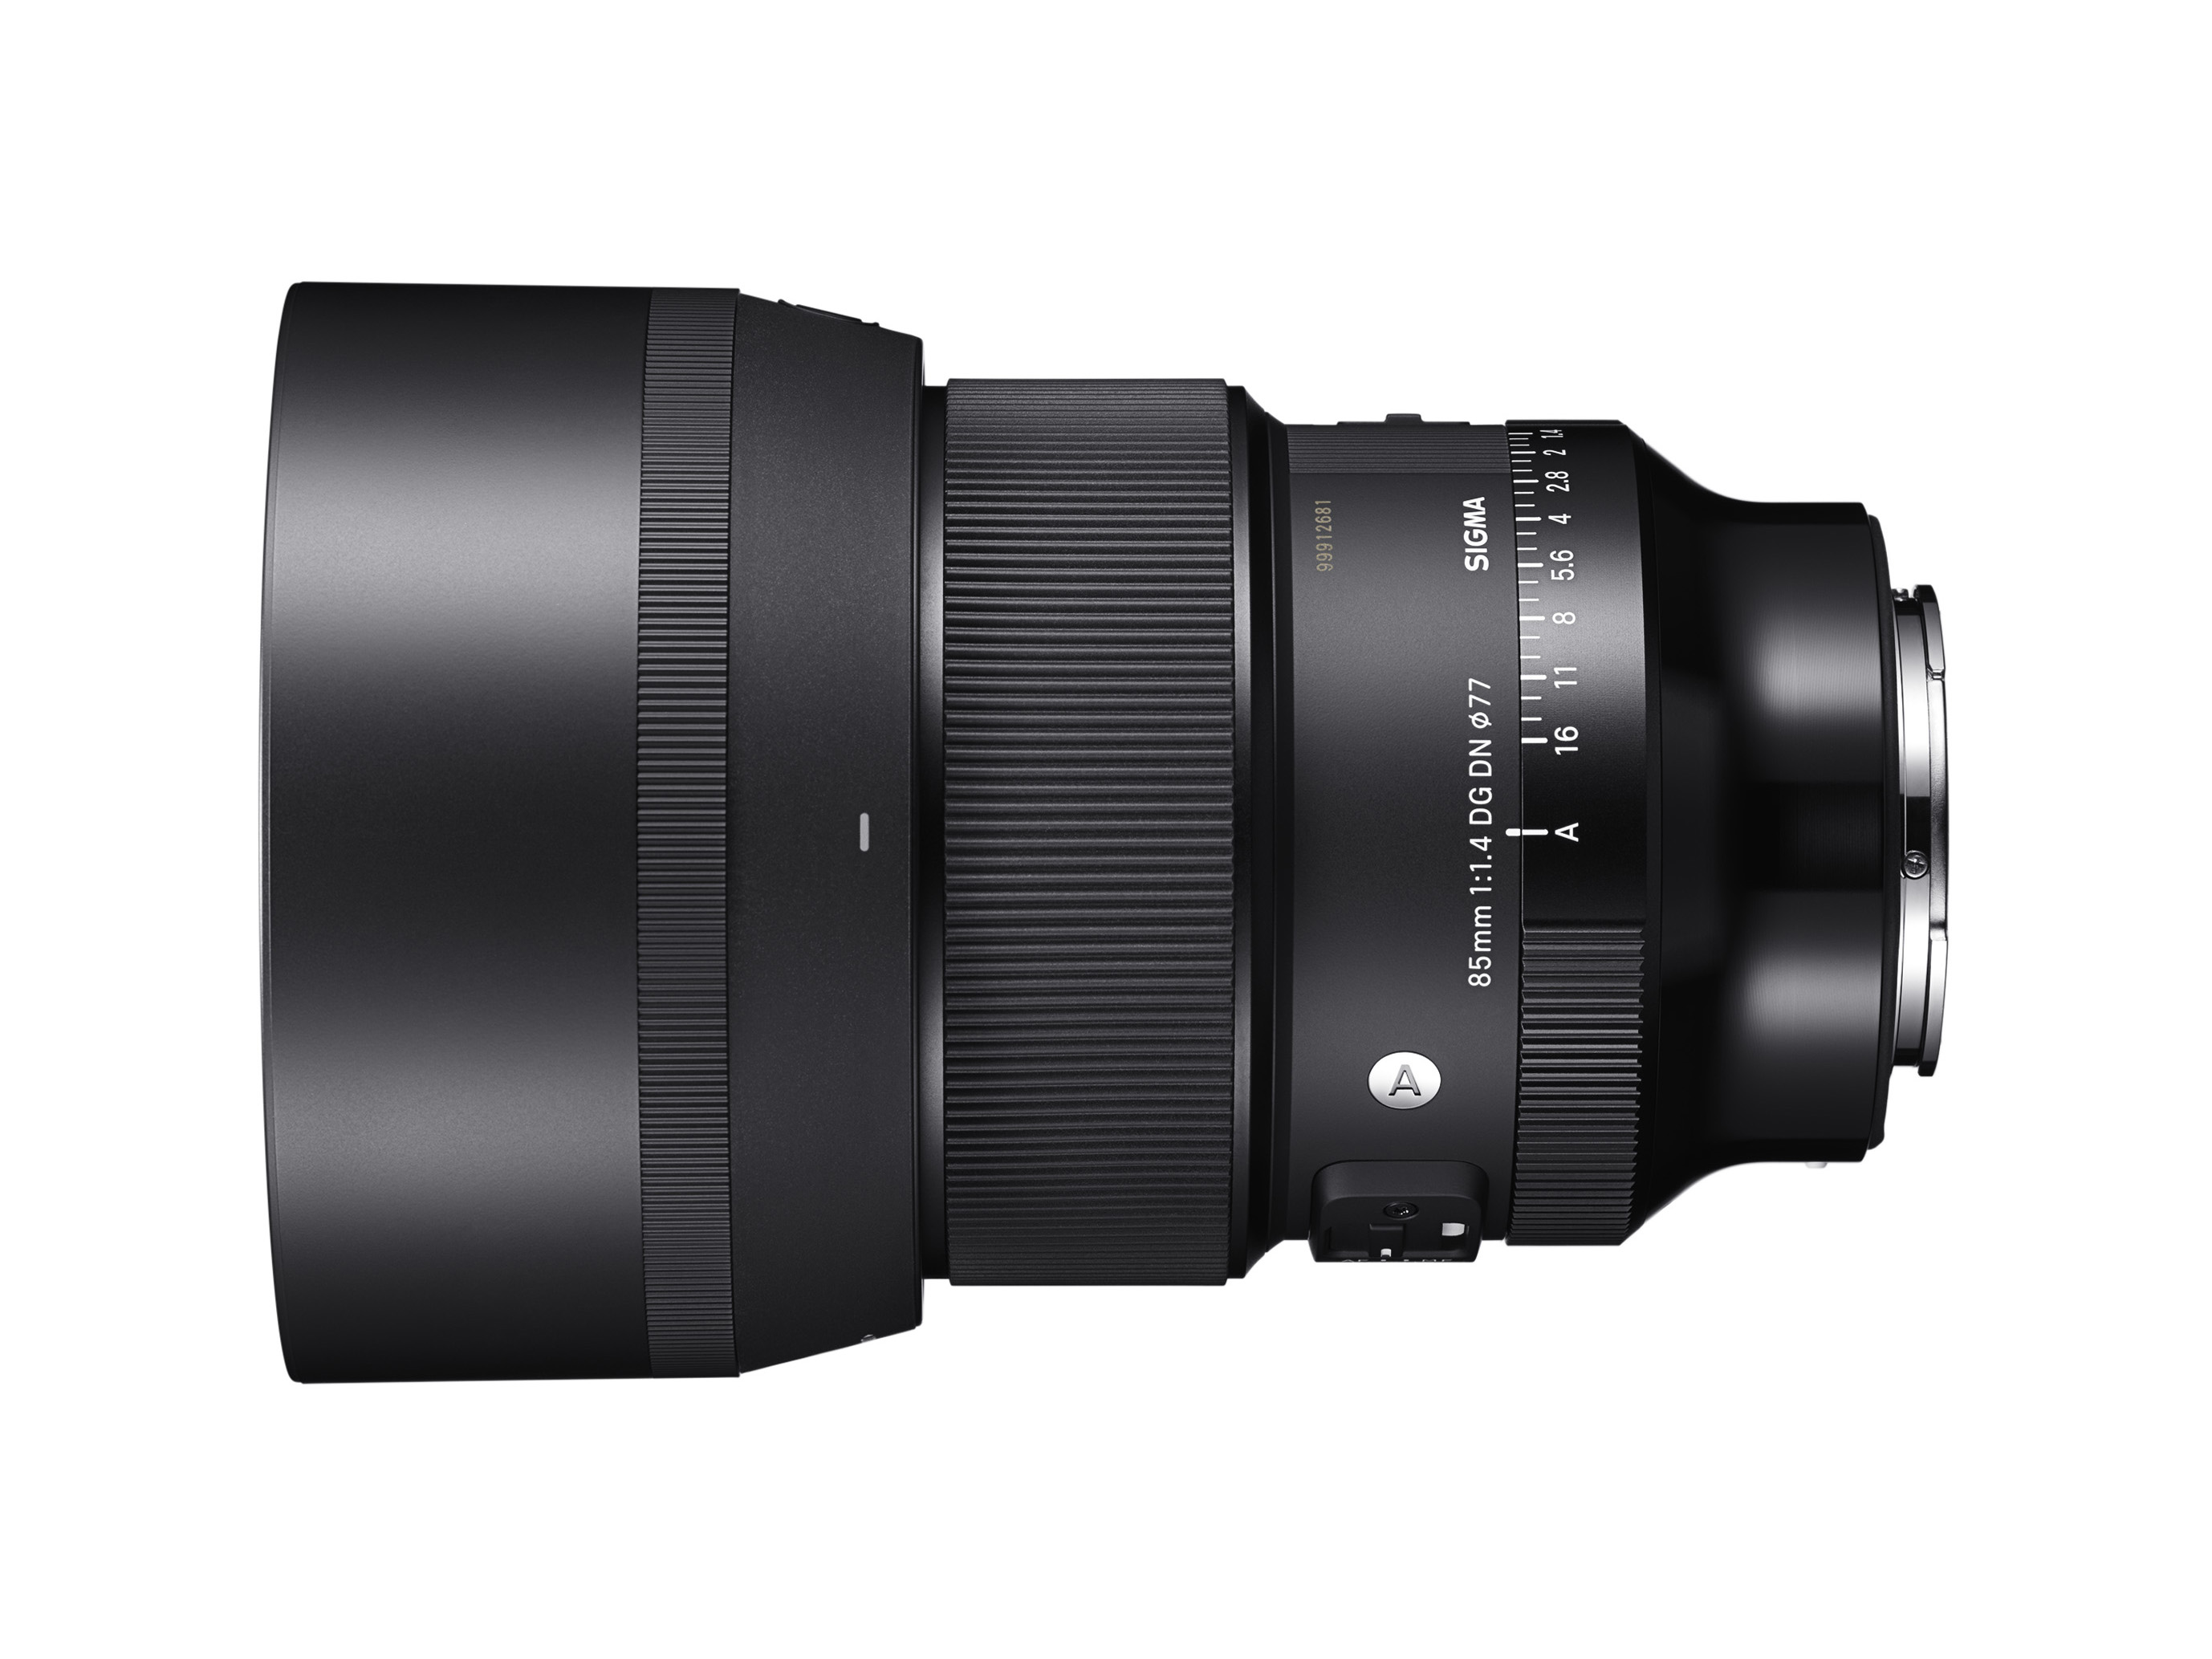 Sigma Announces the 85mm F1.4 DG DN | Art Lens, the Definitive Portrait Prime for the Mirrorless Age